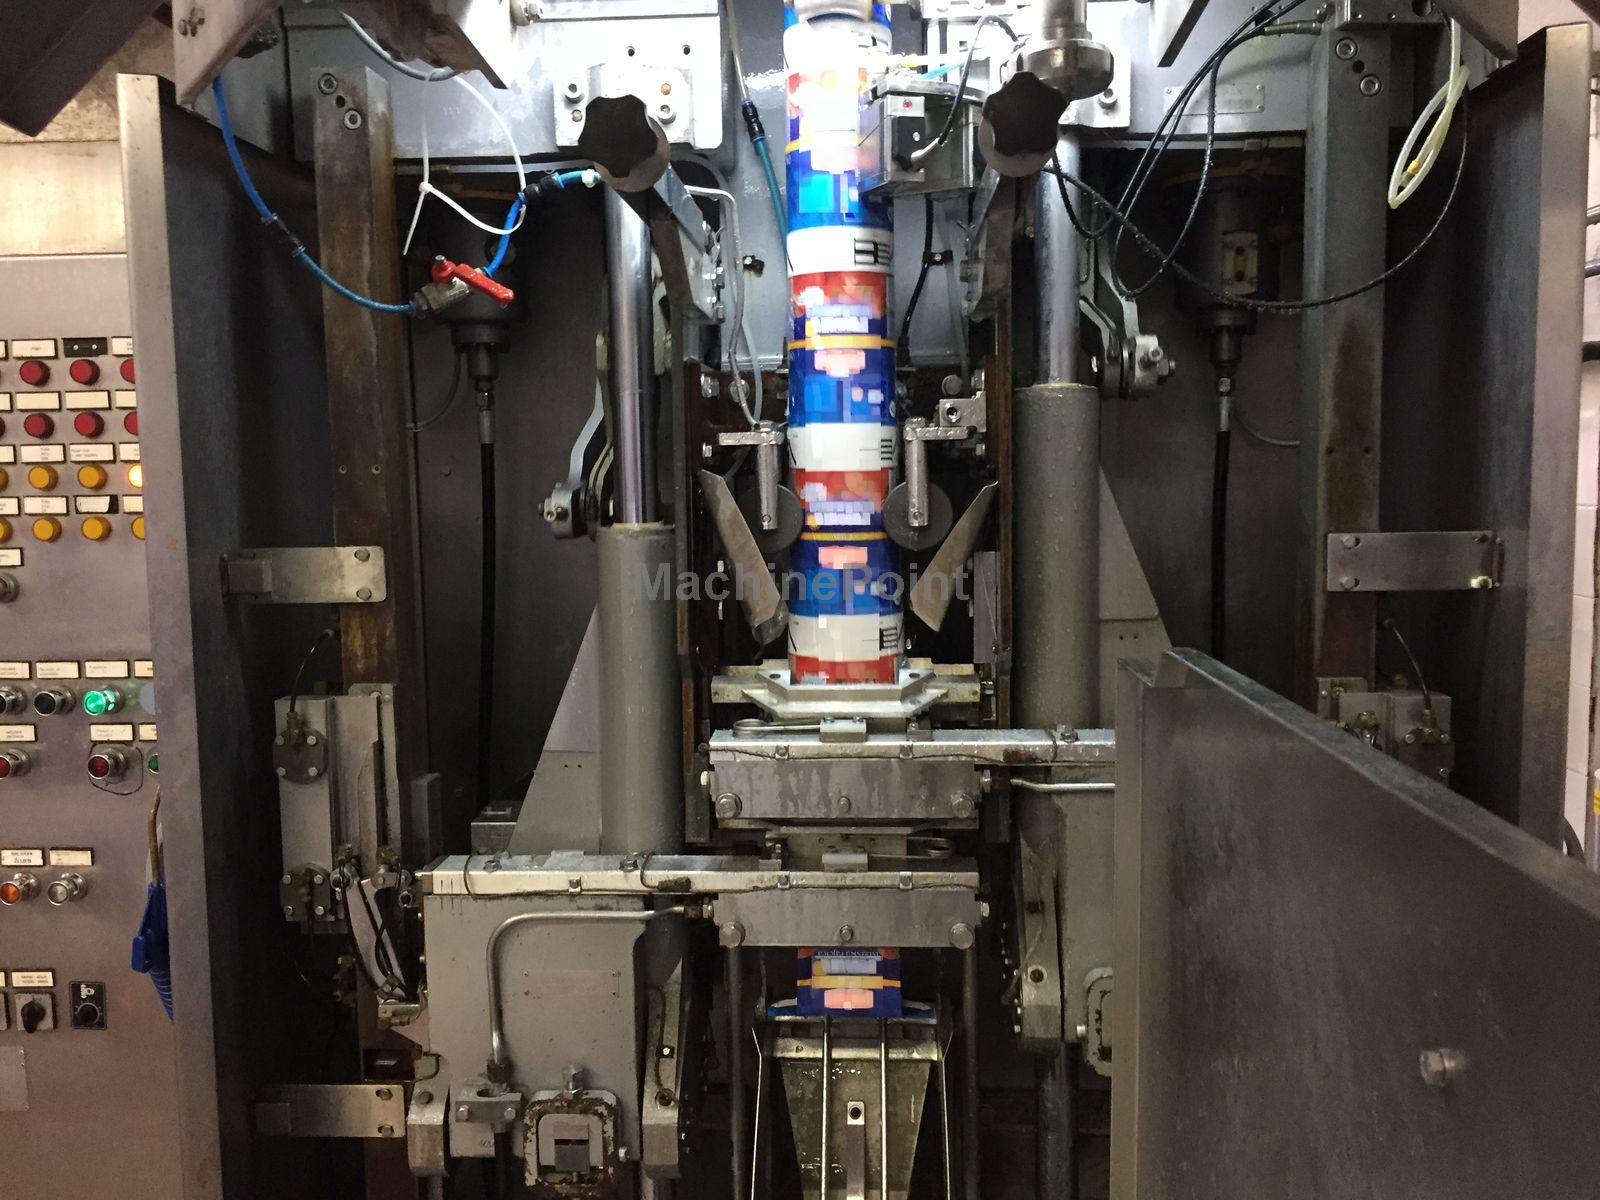 TETRA PAK - TBA3 500B - Used machine - MachinePoint